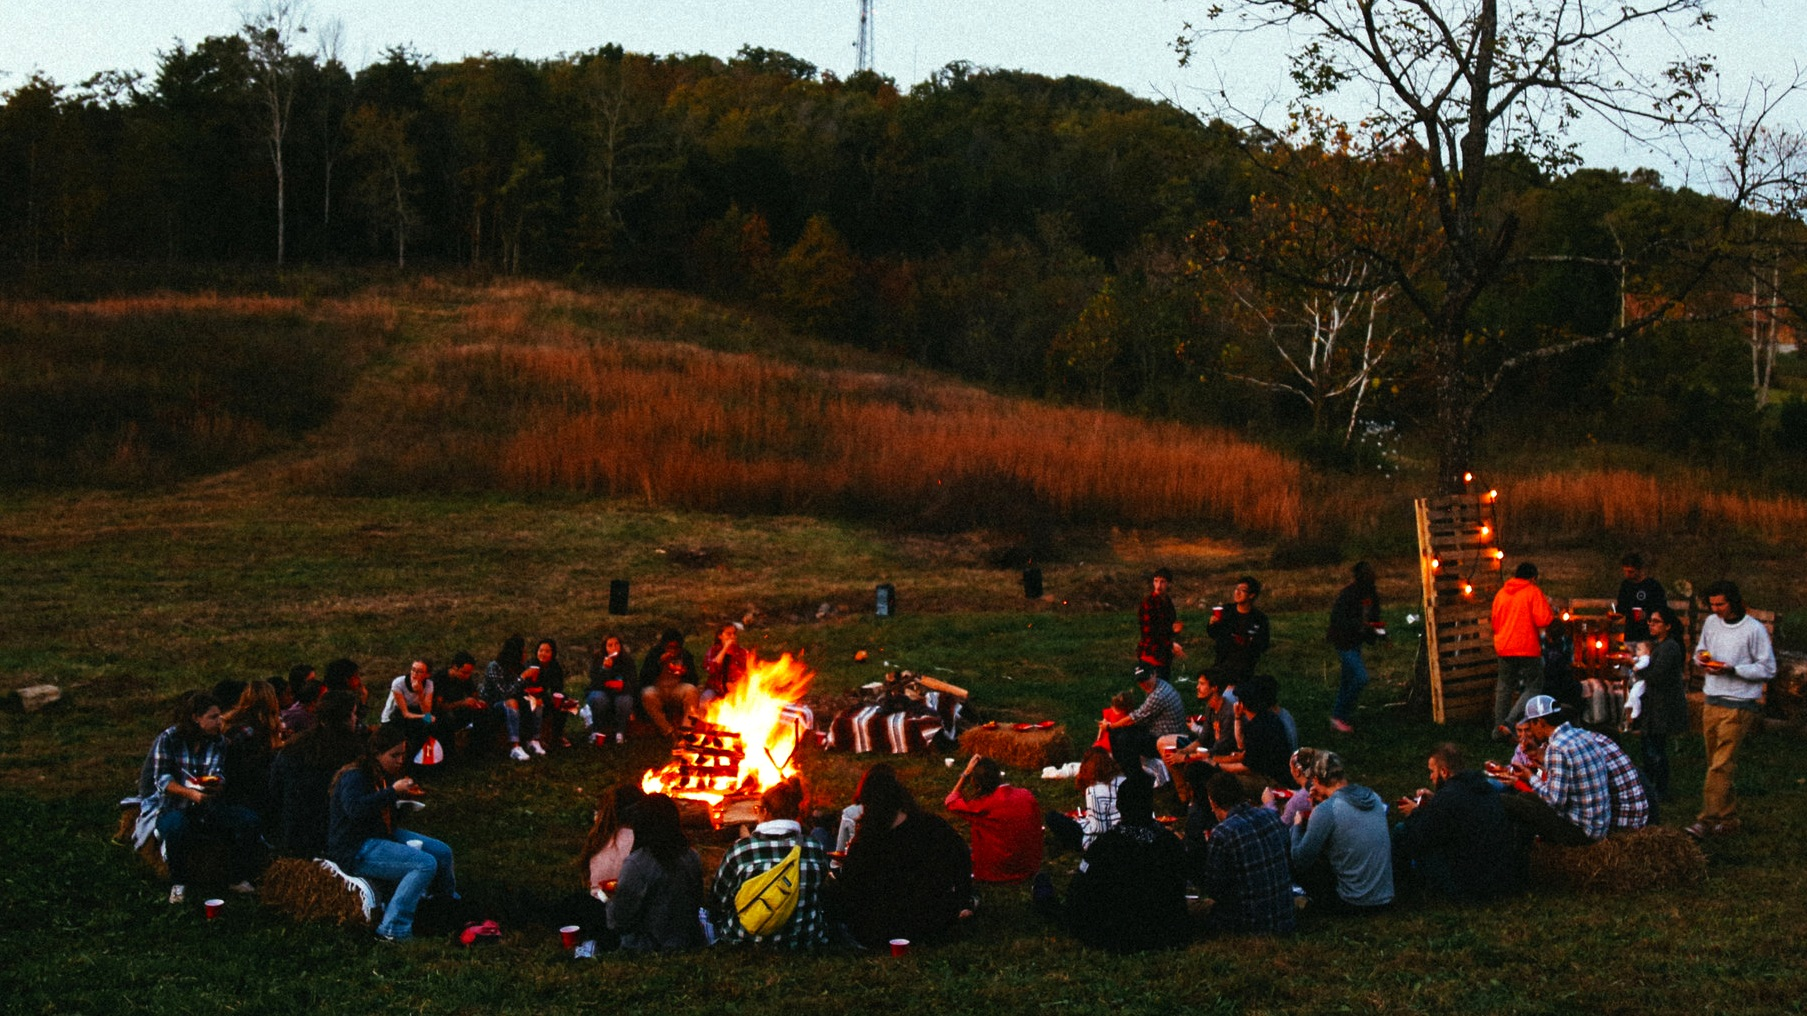 BONANZA - Homemade chili competition, outdoor games, dancing, and a bonfire. It's our festival of the fall semester, and it's fantastic.